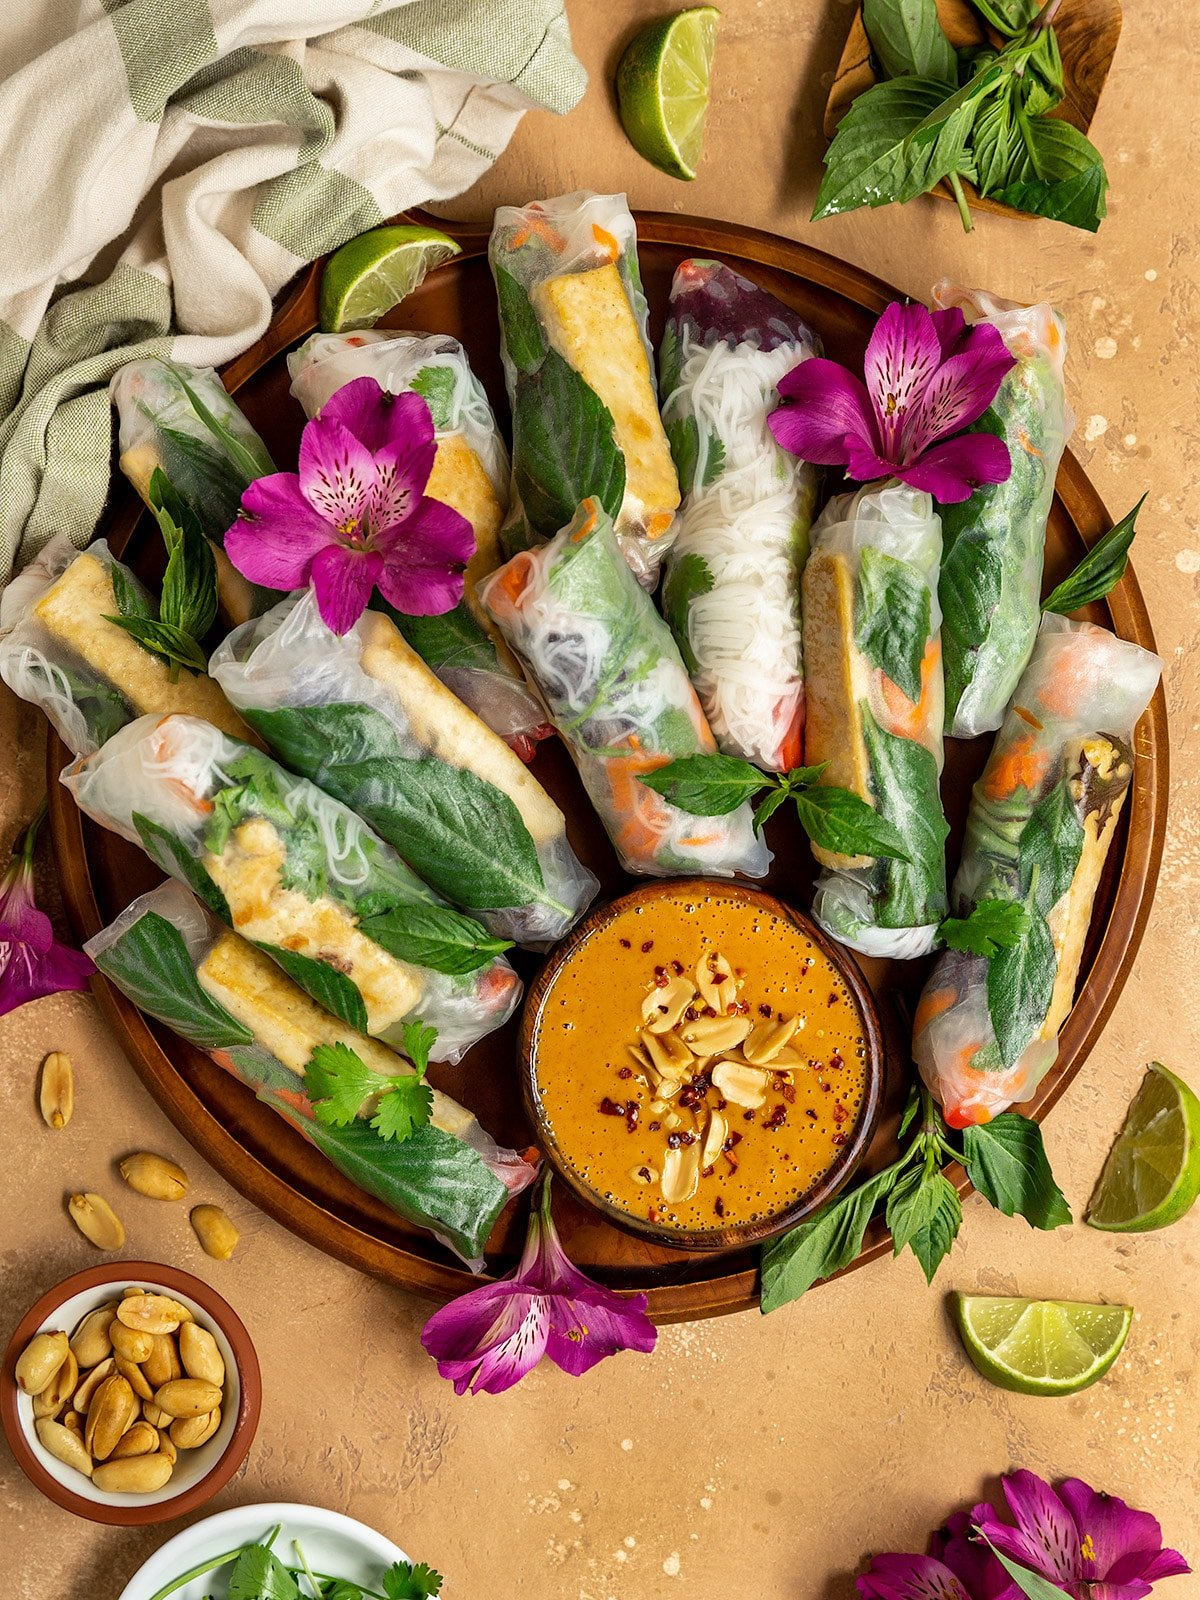 platter of fresh rolls with basil, tofu, and fresh vegetables with a side of peanut sauce, limes, peanuts, and fresh purple flowers on top